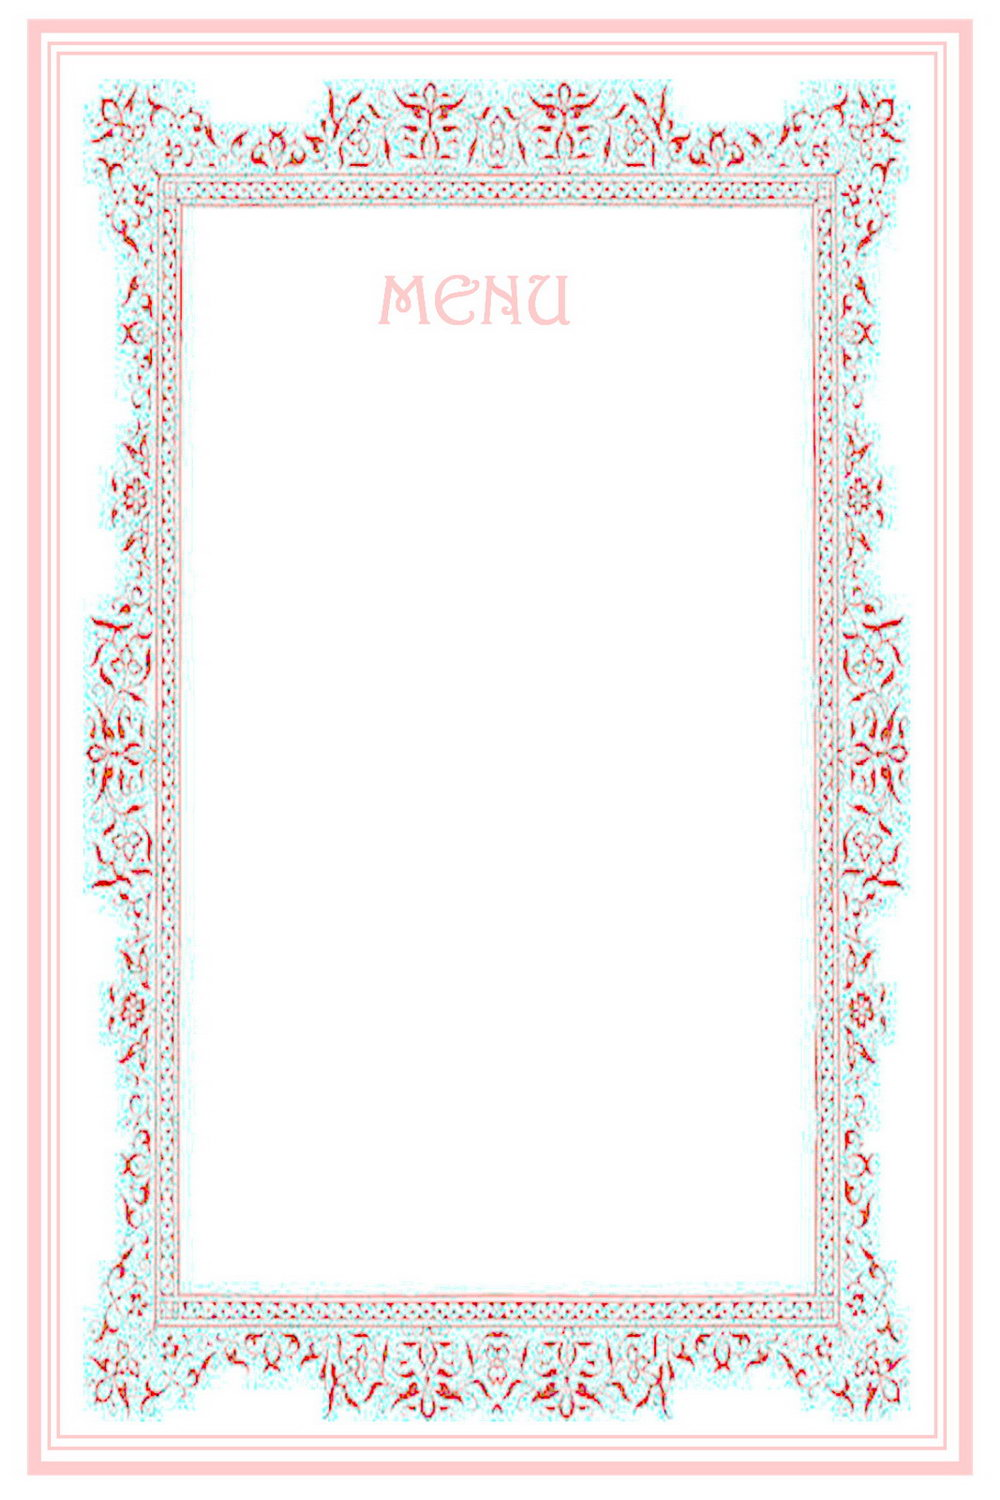 Dinner Party Menu Templates Free Download Word